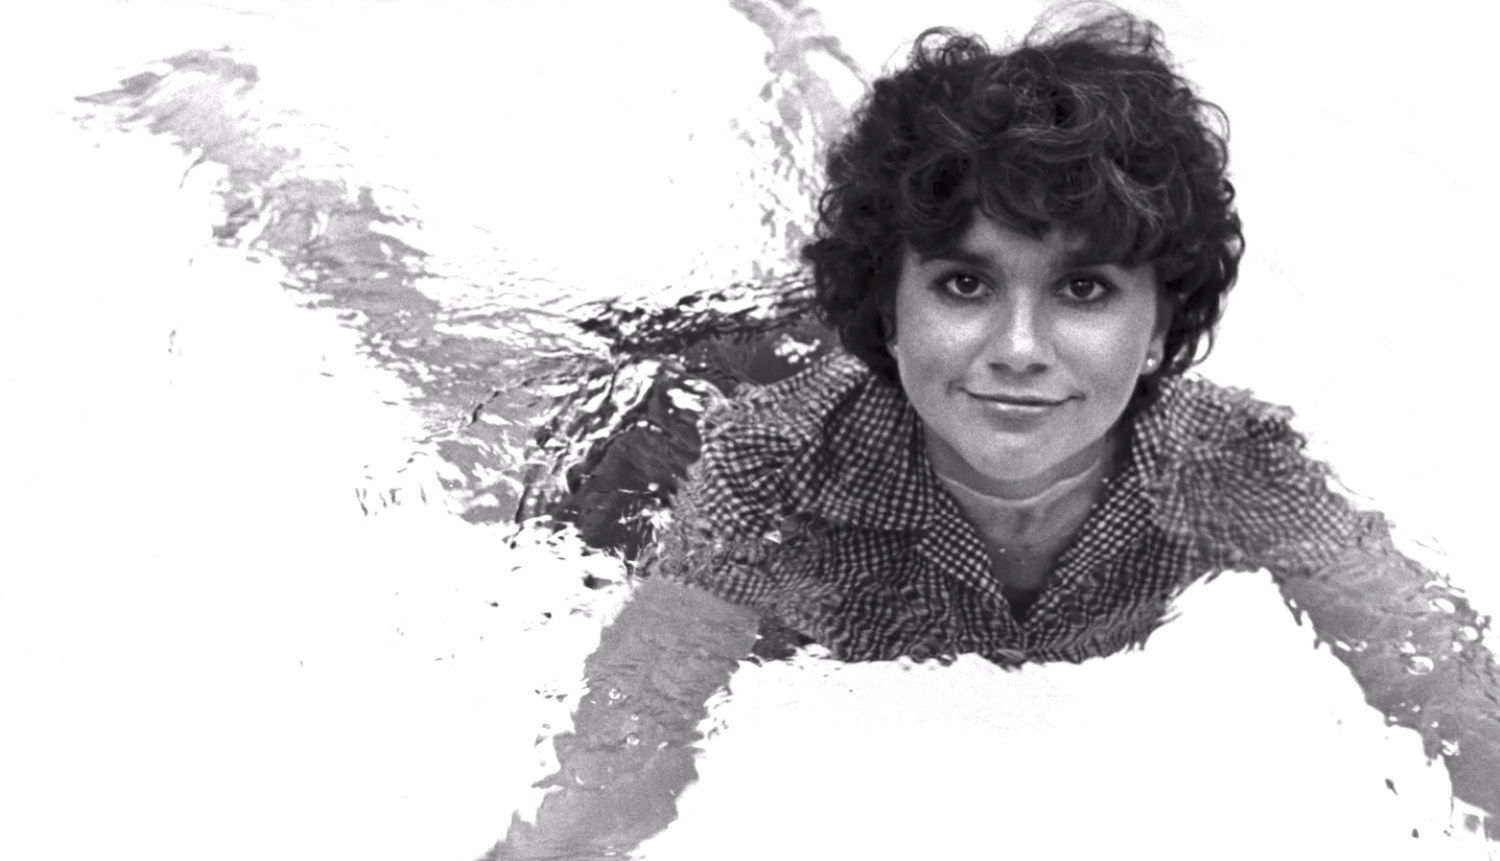 REVIEW New Documentary Showcases Linda Ronstadt And Her Love Of Music Culture Dailynebraskan com